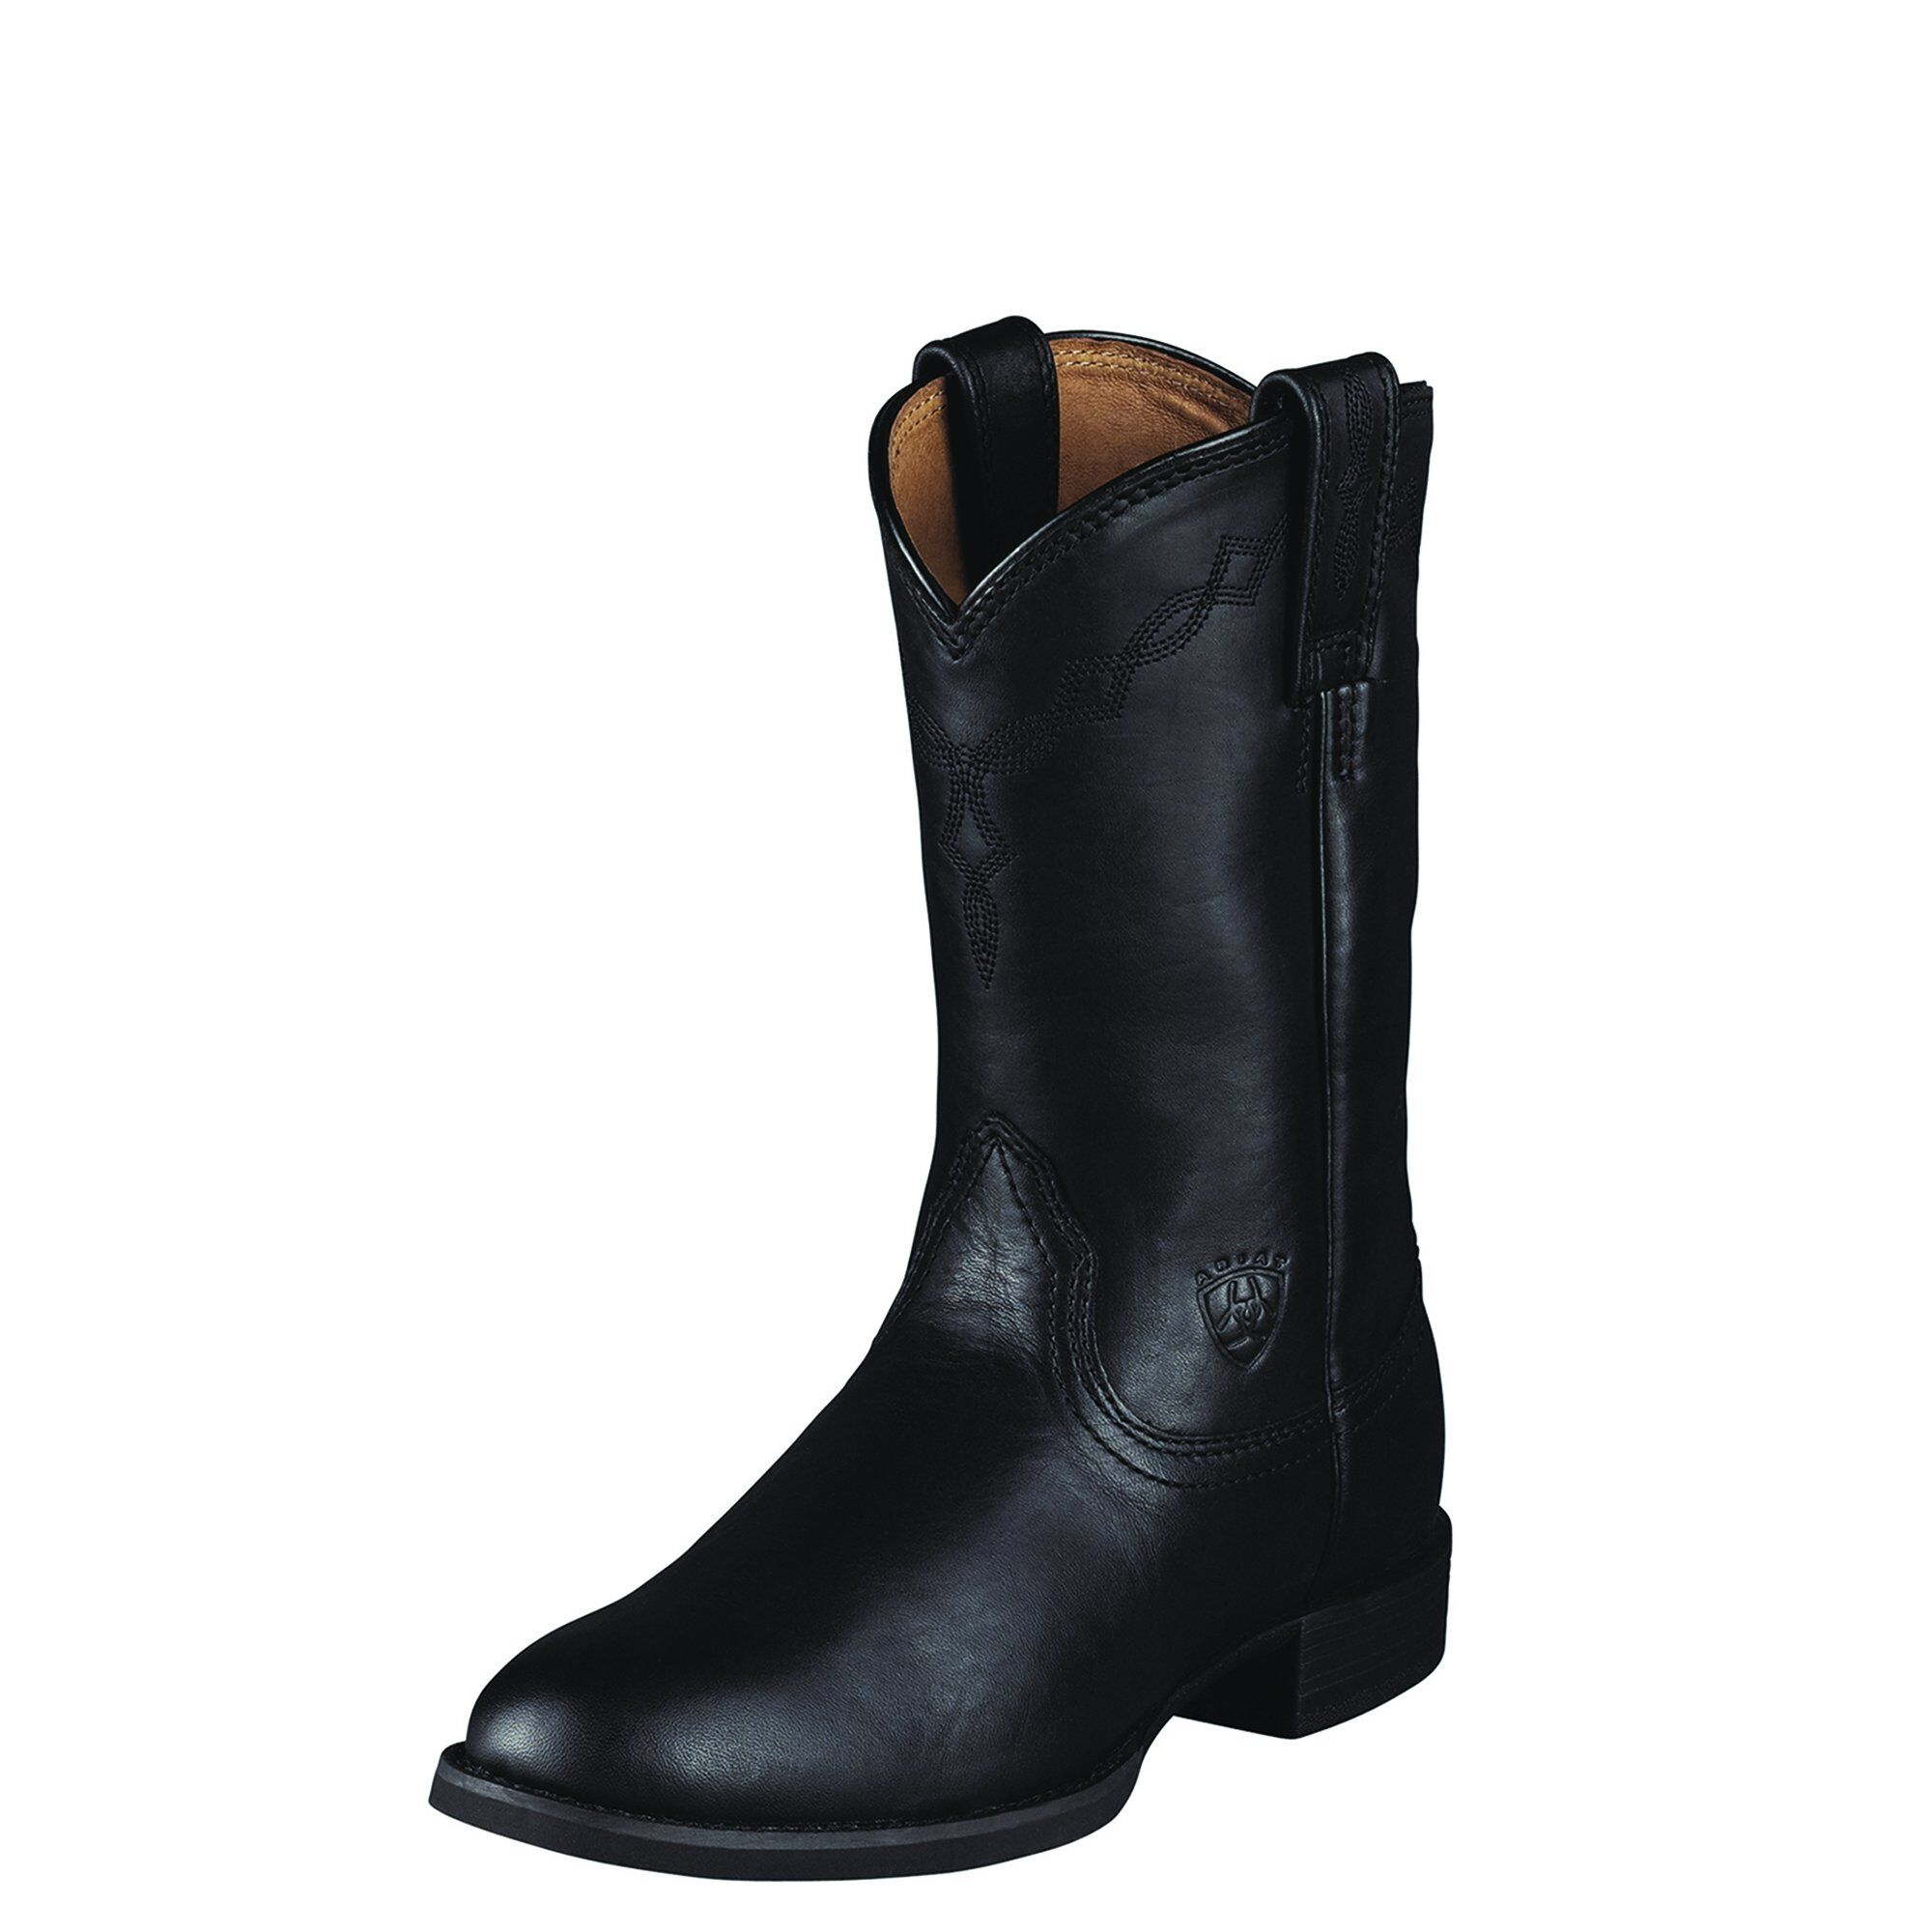 Women's Heritage Roper Western Boots in Black Leather by Ariat